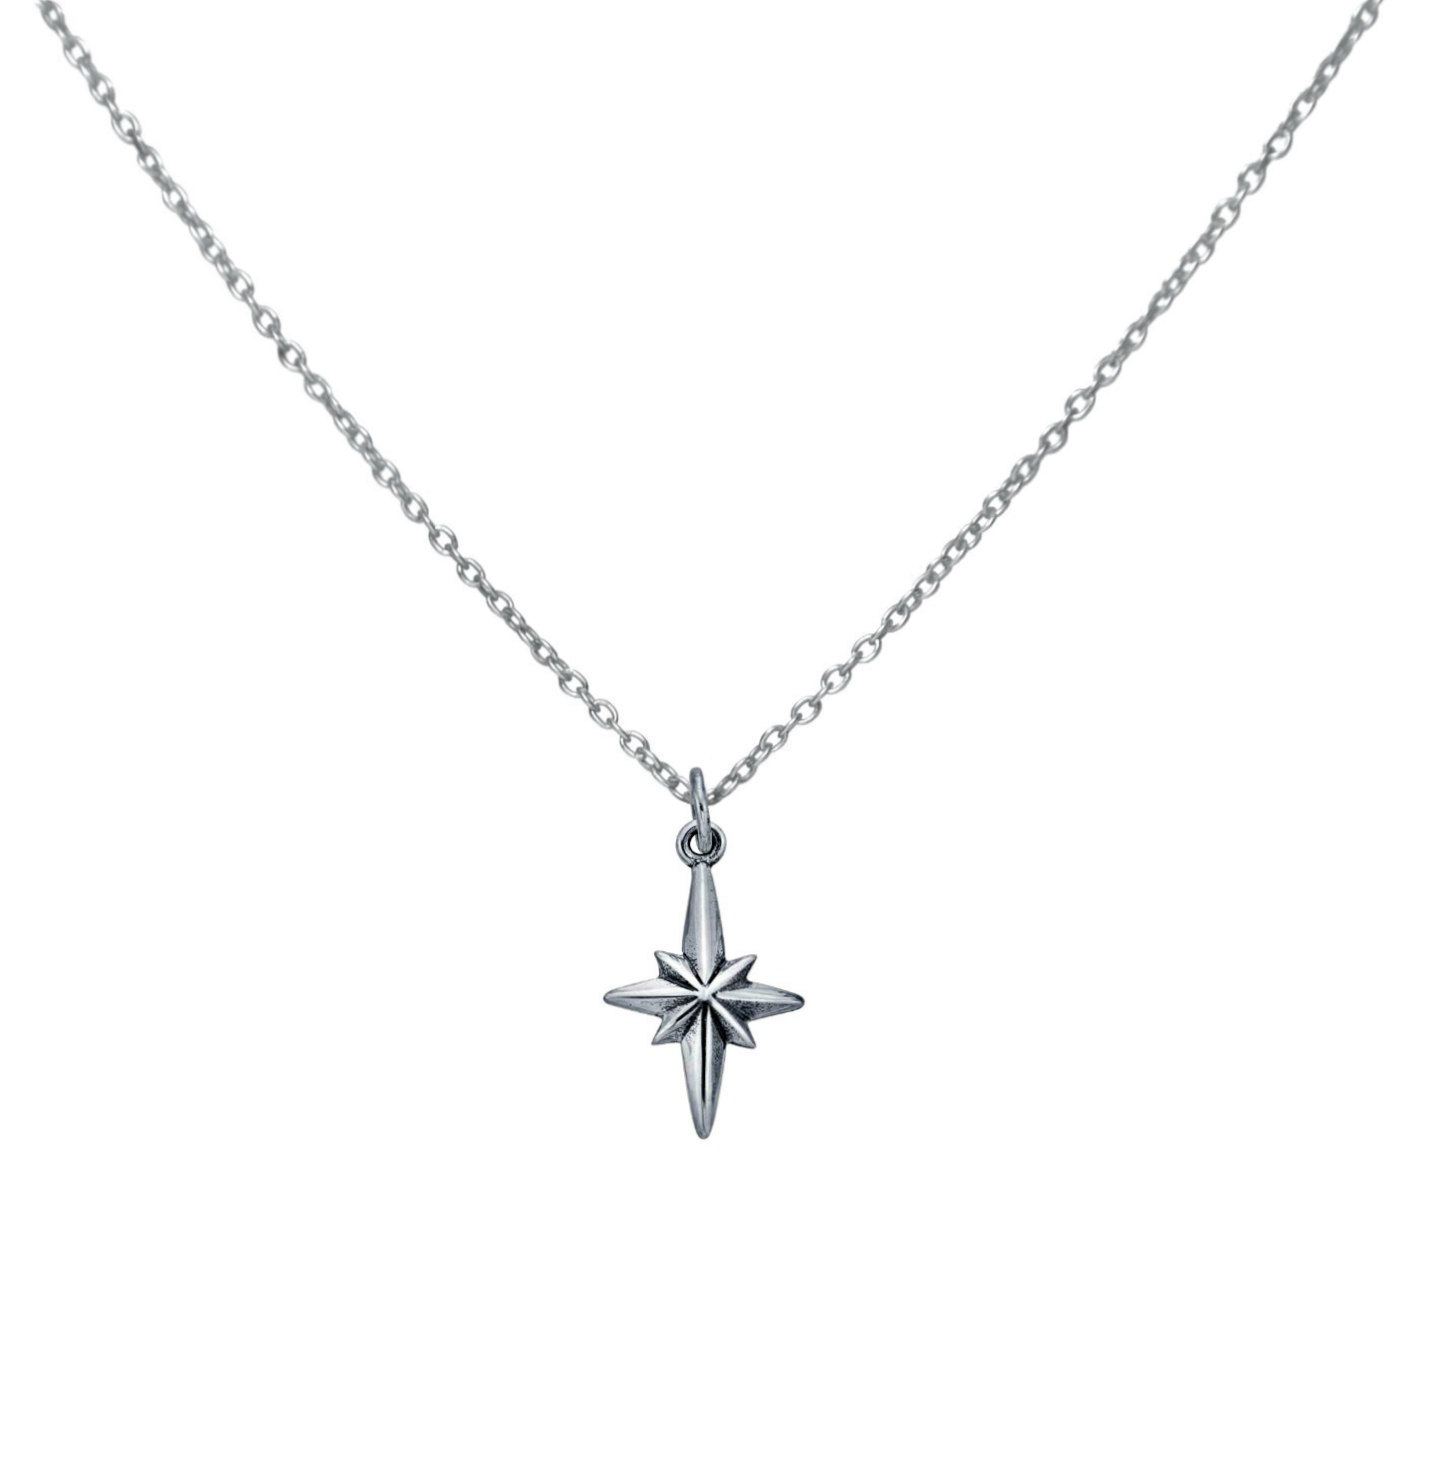 Silver north star pendant necklace evyral aloadofball Images